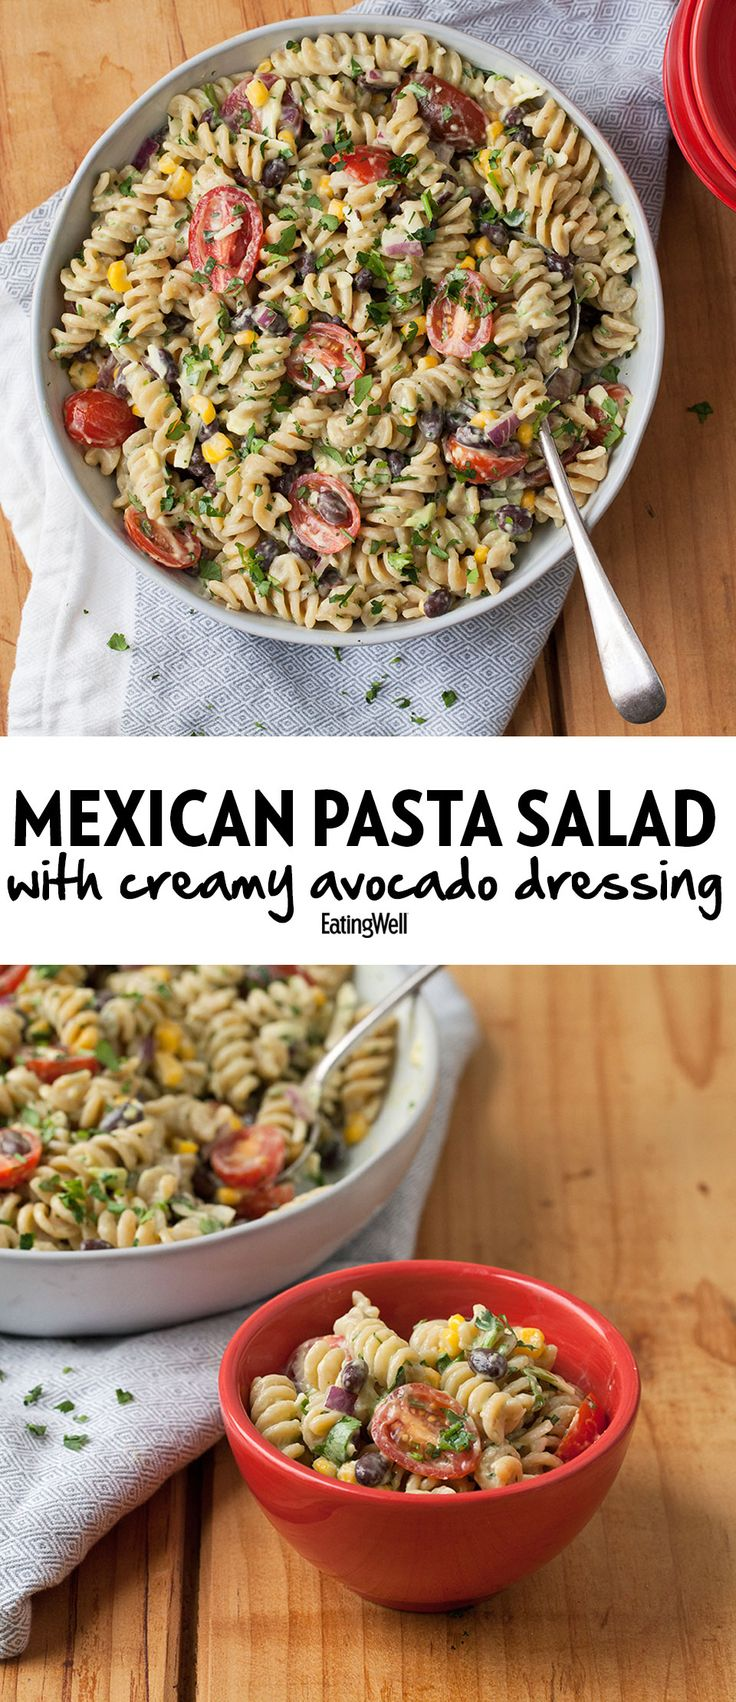 pasta salad recipe. We lighten up the creamy dressing with avocado ...